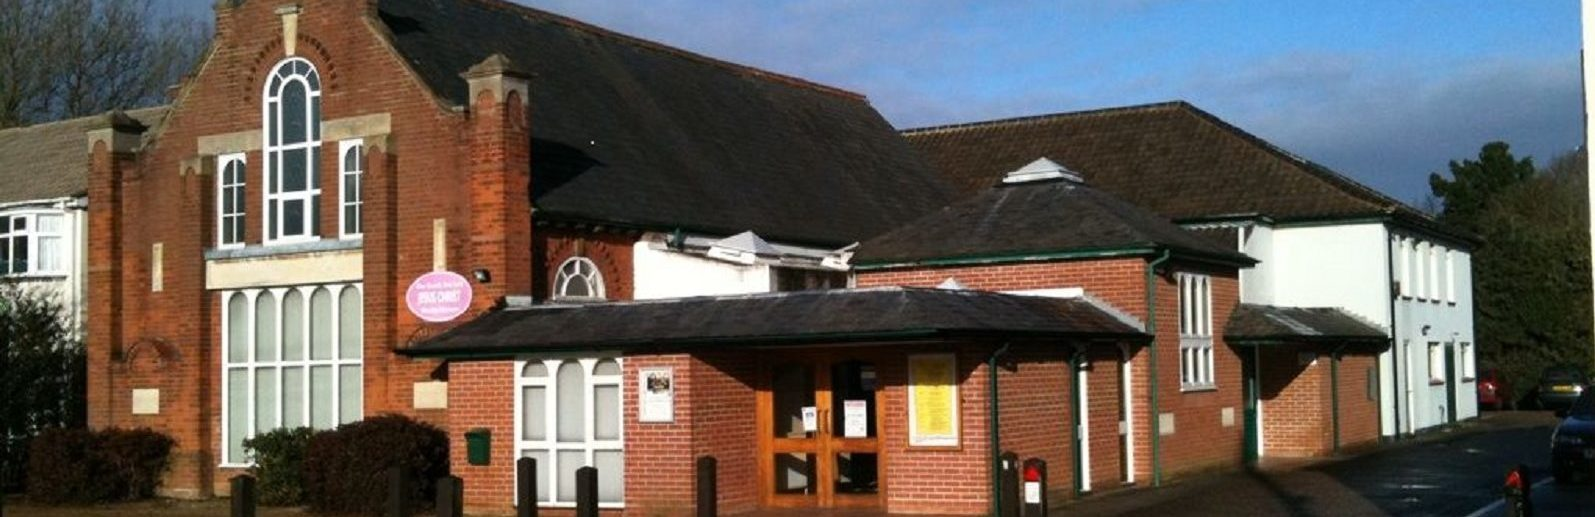 Hethersett Methodist Church